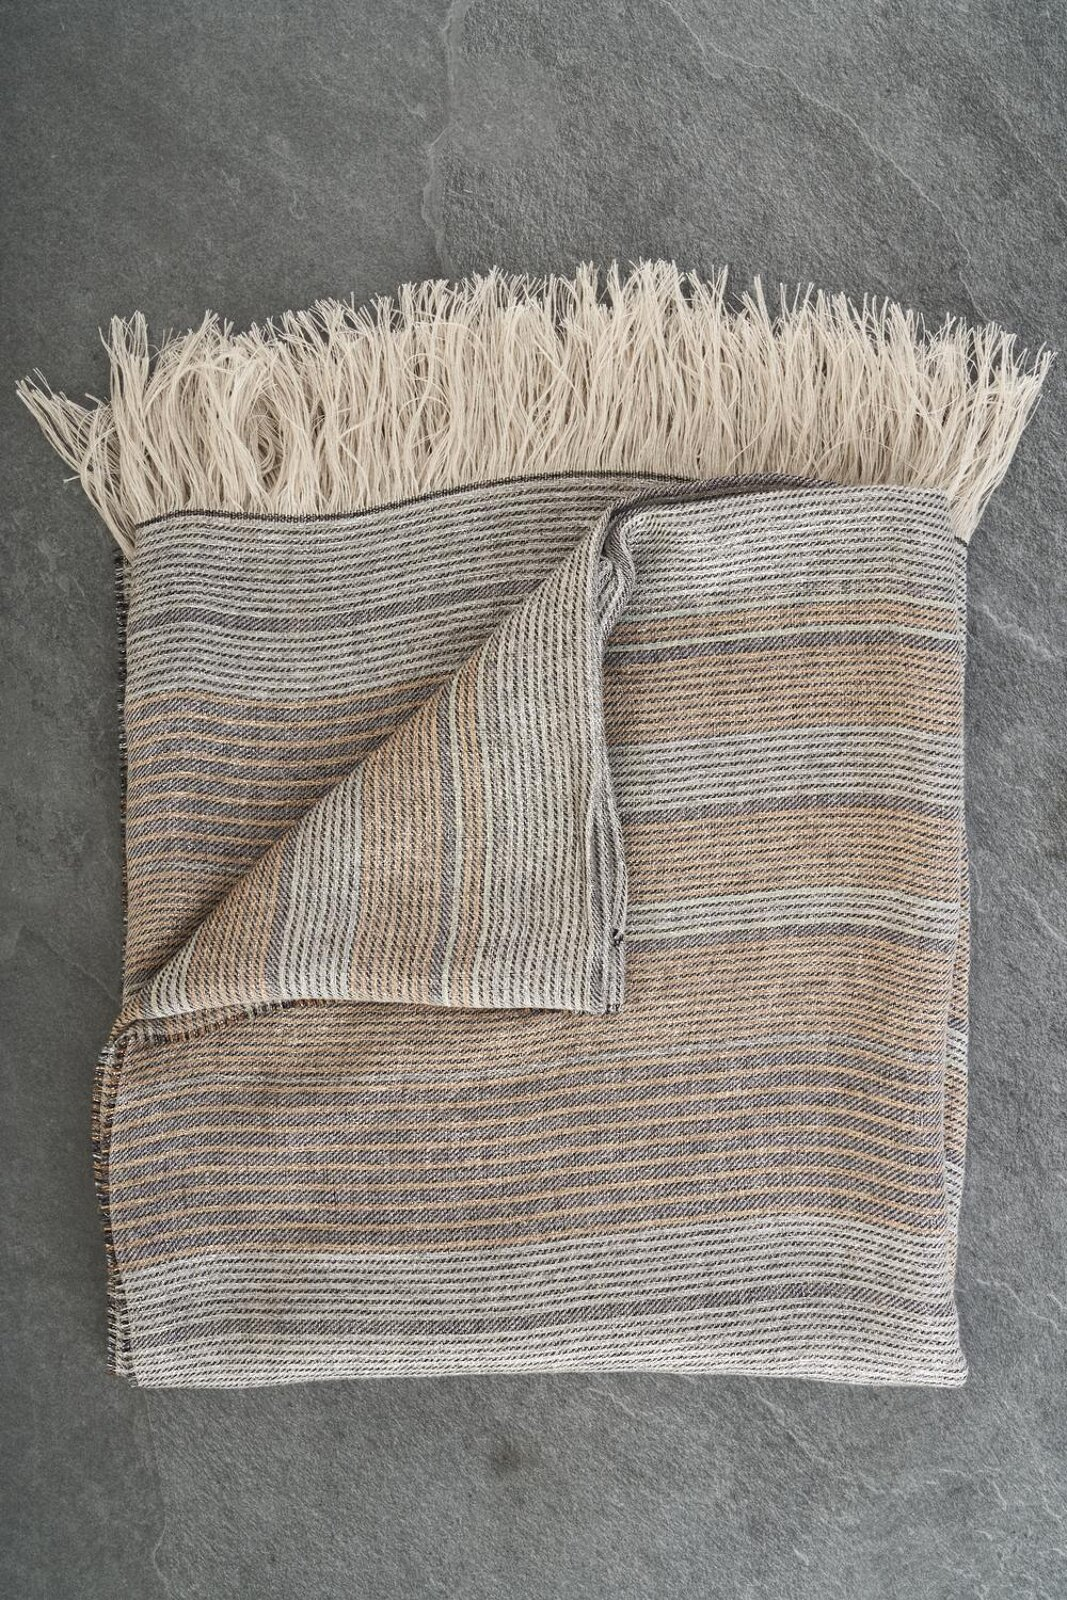 Maxi Stole In Soft Multicolored Linen And Viscose With Fringes. Dimensions: 140X170 Cm - Peserico